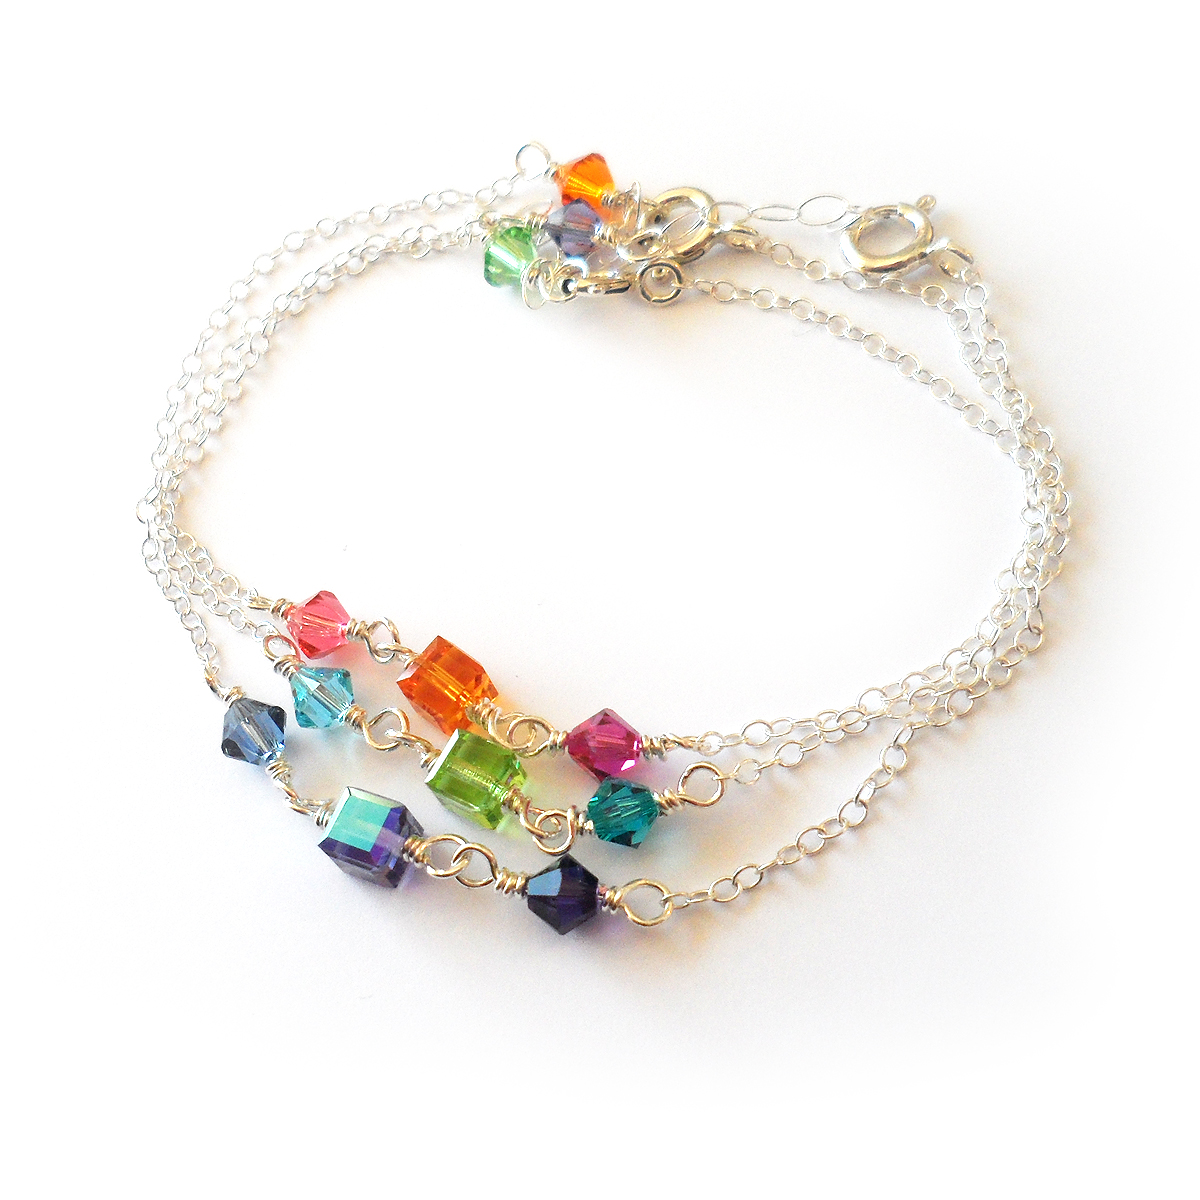 Colorful Swarovski Crystals And Sterling Silver Bracelets Word Of